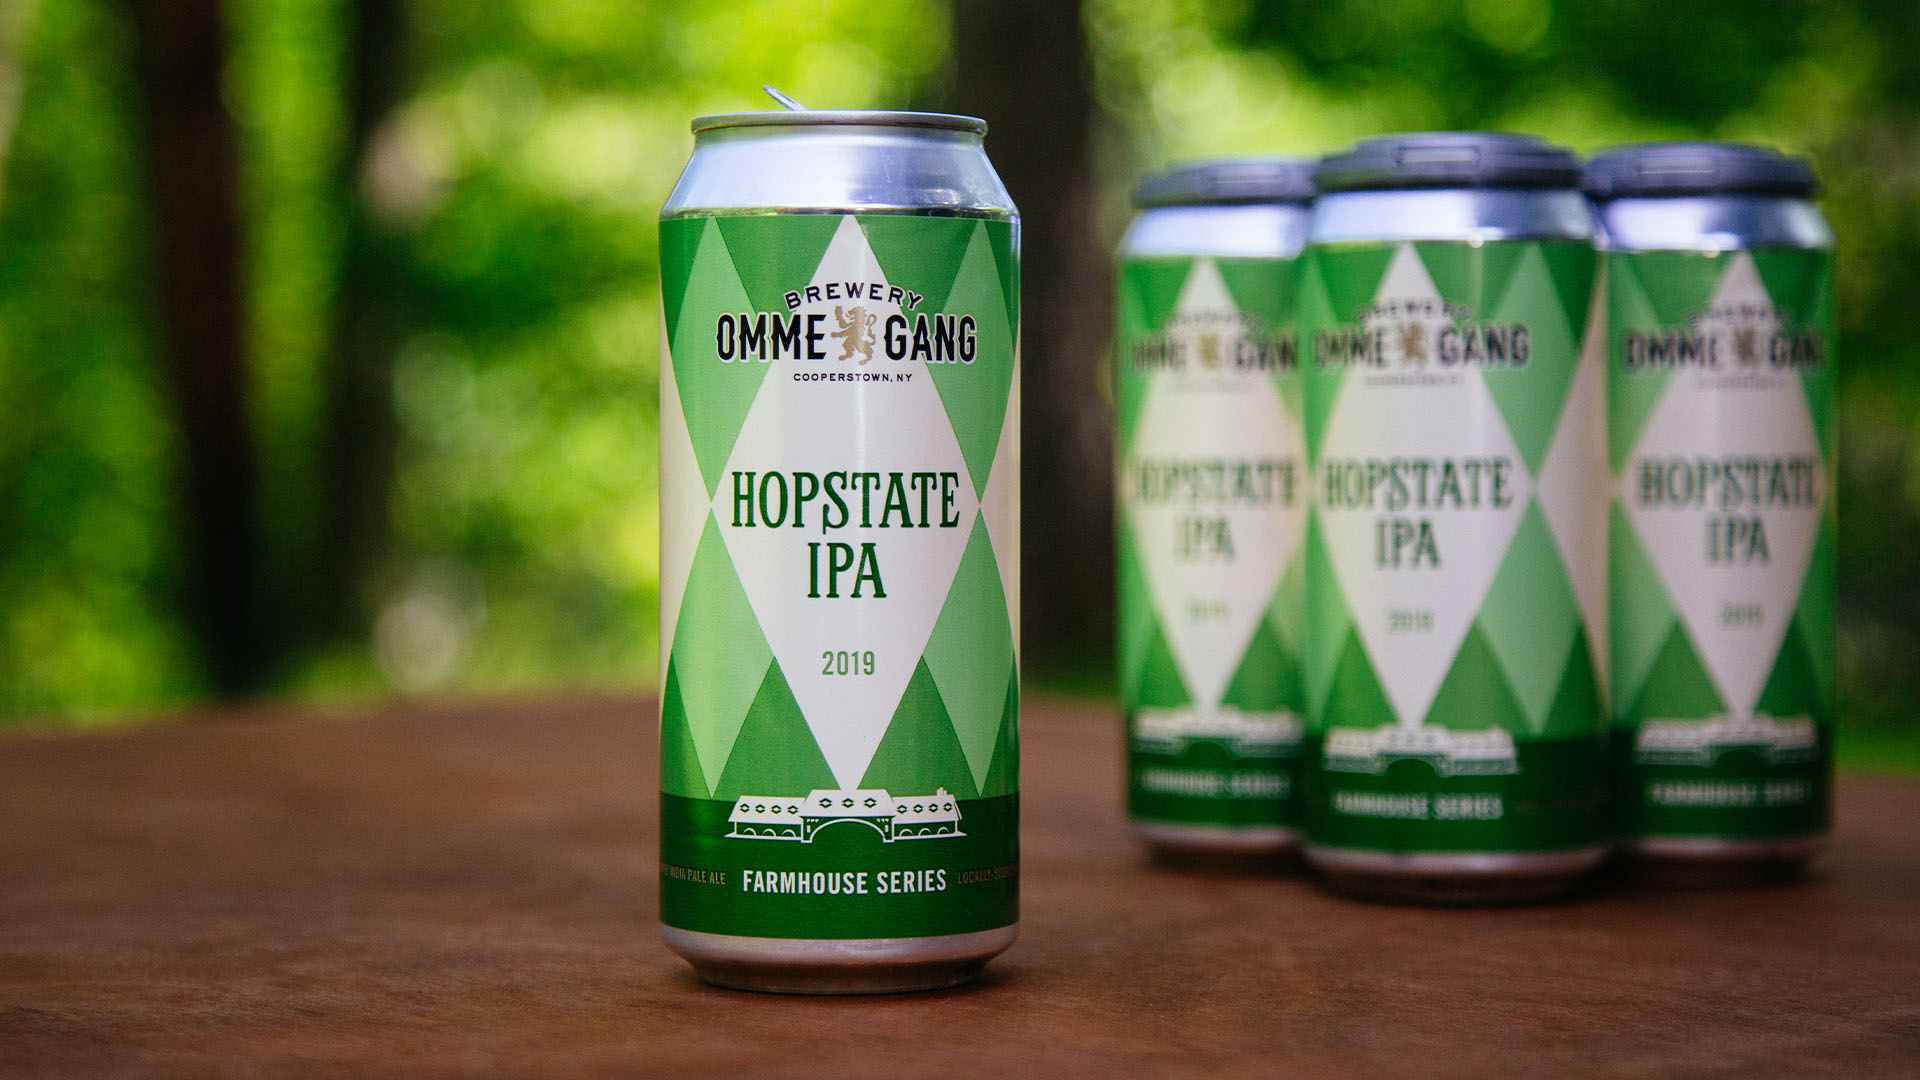 Brewery Ommegang's 2019 Hopstate IPA celebrates New York hop farmers and maltsters